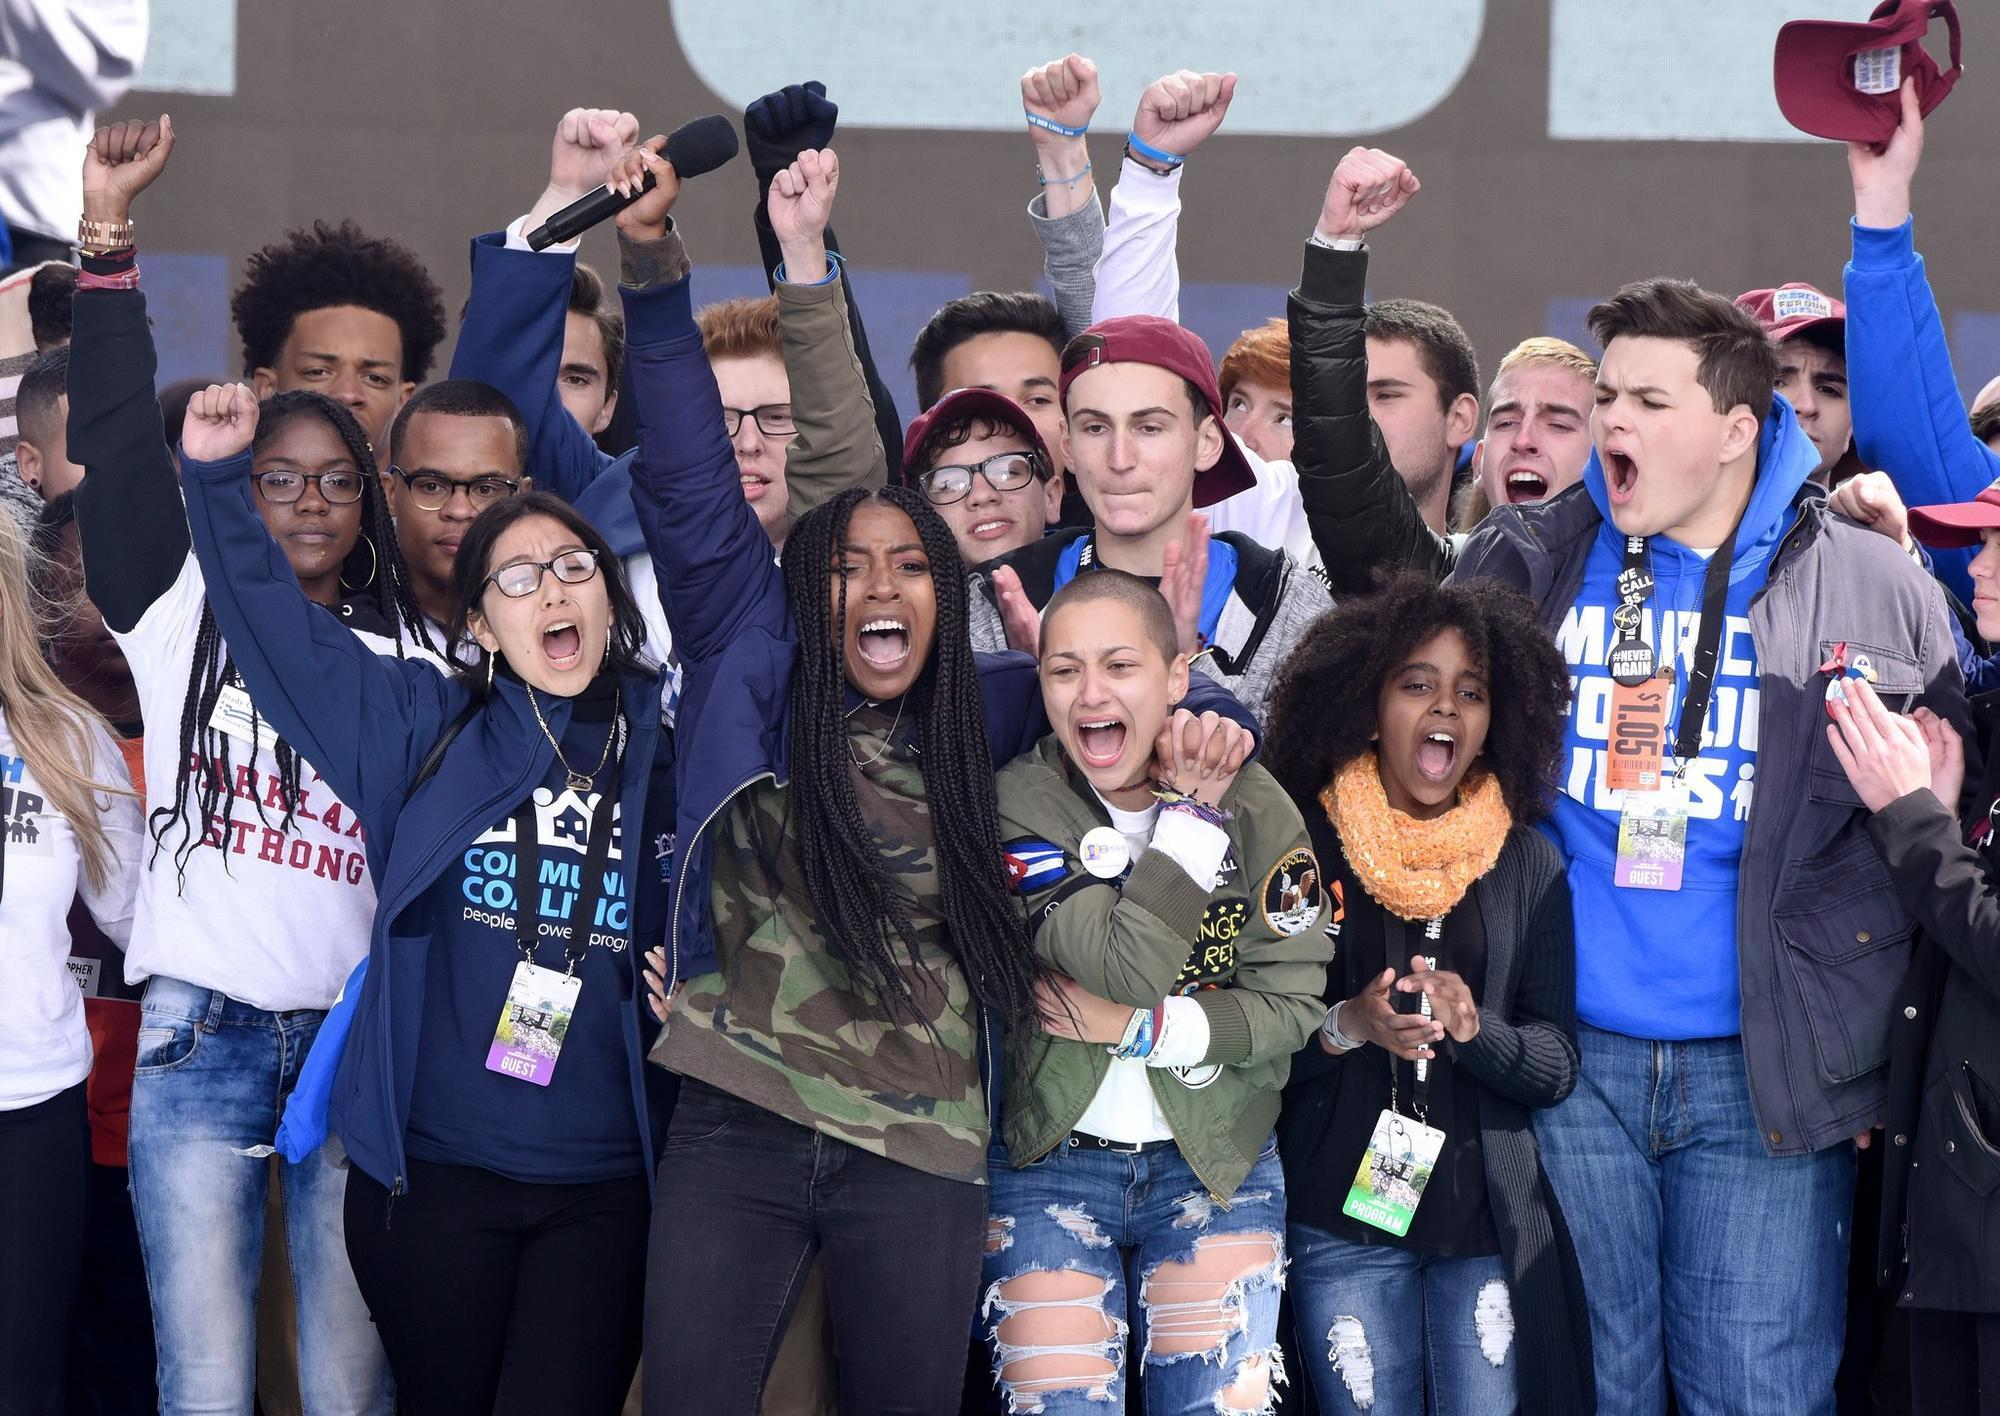 March For Our Lives A Nationwide Cry For Gun Control